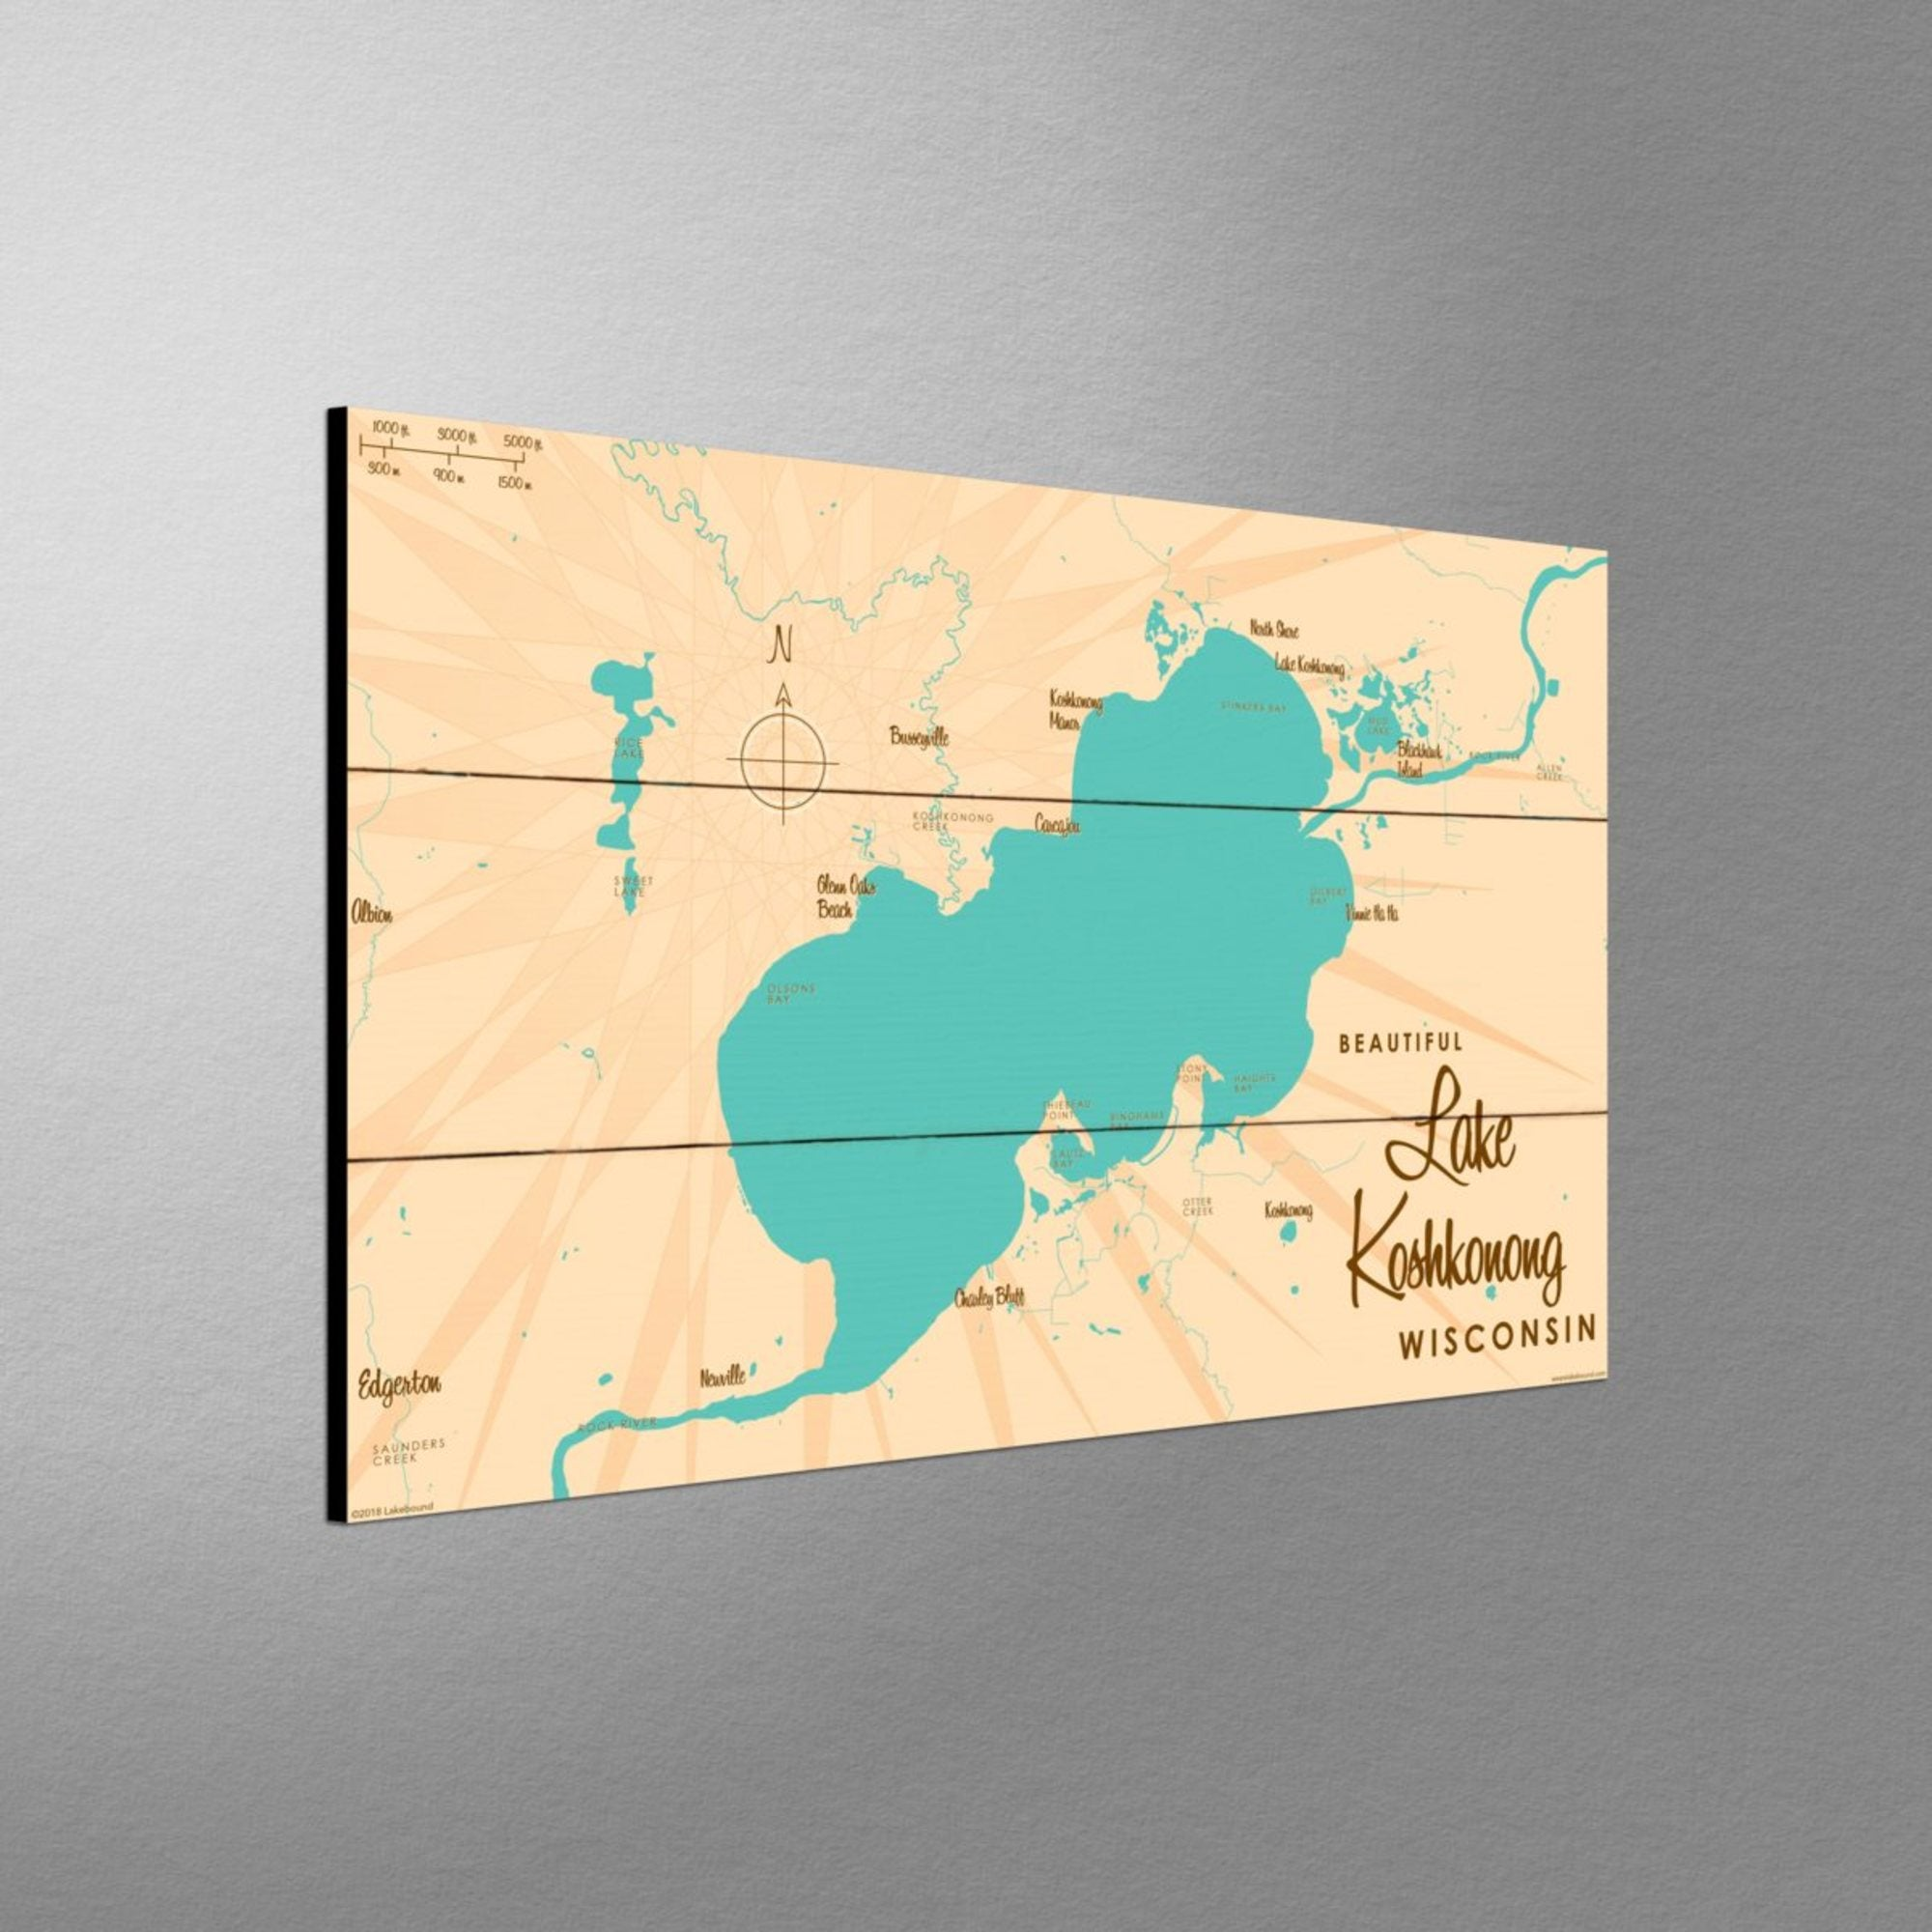 Lake Koshkonong Wisconsin, Wood Sign Map Art